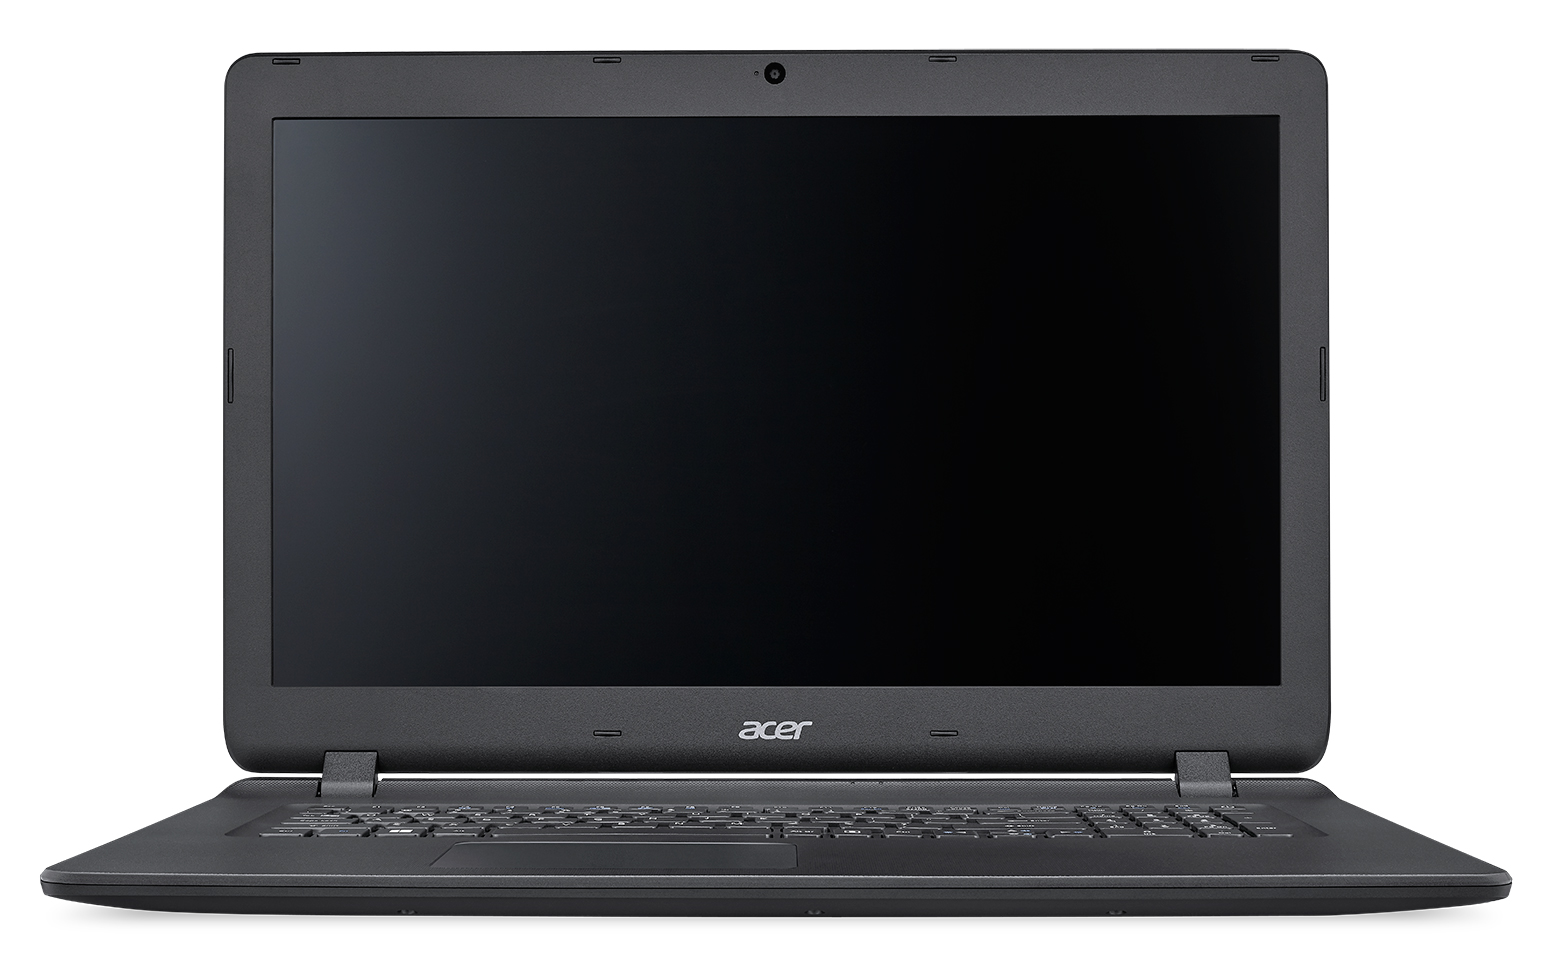 "Acer Aspire ES17 (ES1-732-P6Z4) Pentium N4200/8GB+N/A/1TB+N/DVDRW/HD Graphics/17.3"" HD+ LED lesklý/BT/W10 Home/Black"